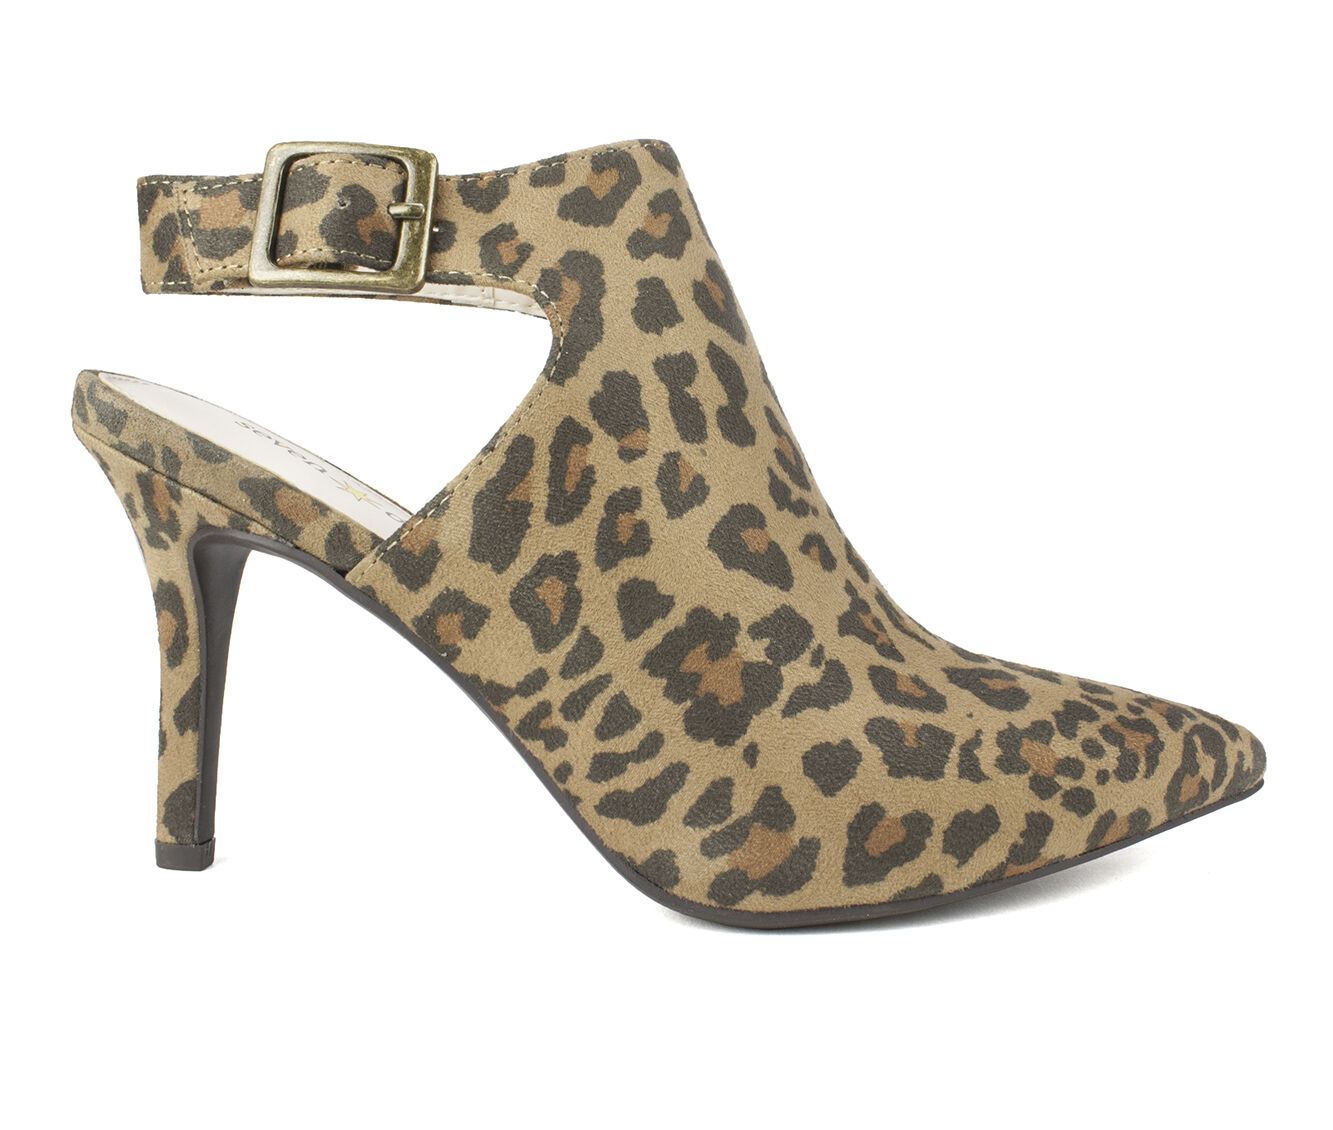 special price Women's Seven Dials Sherly Booties Leopard